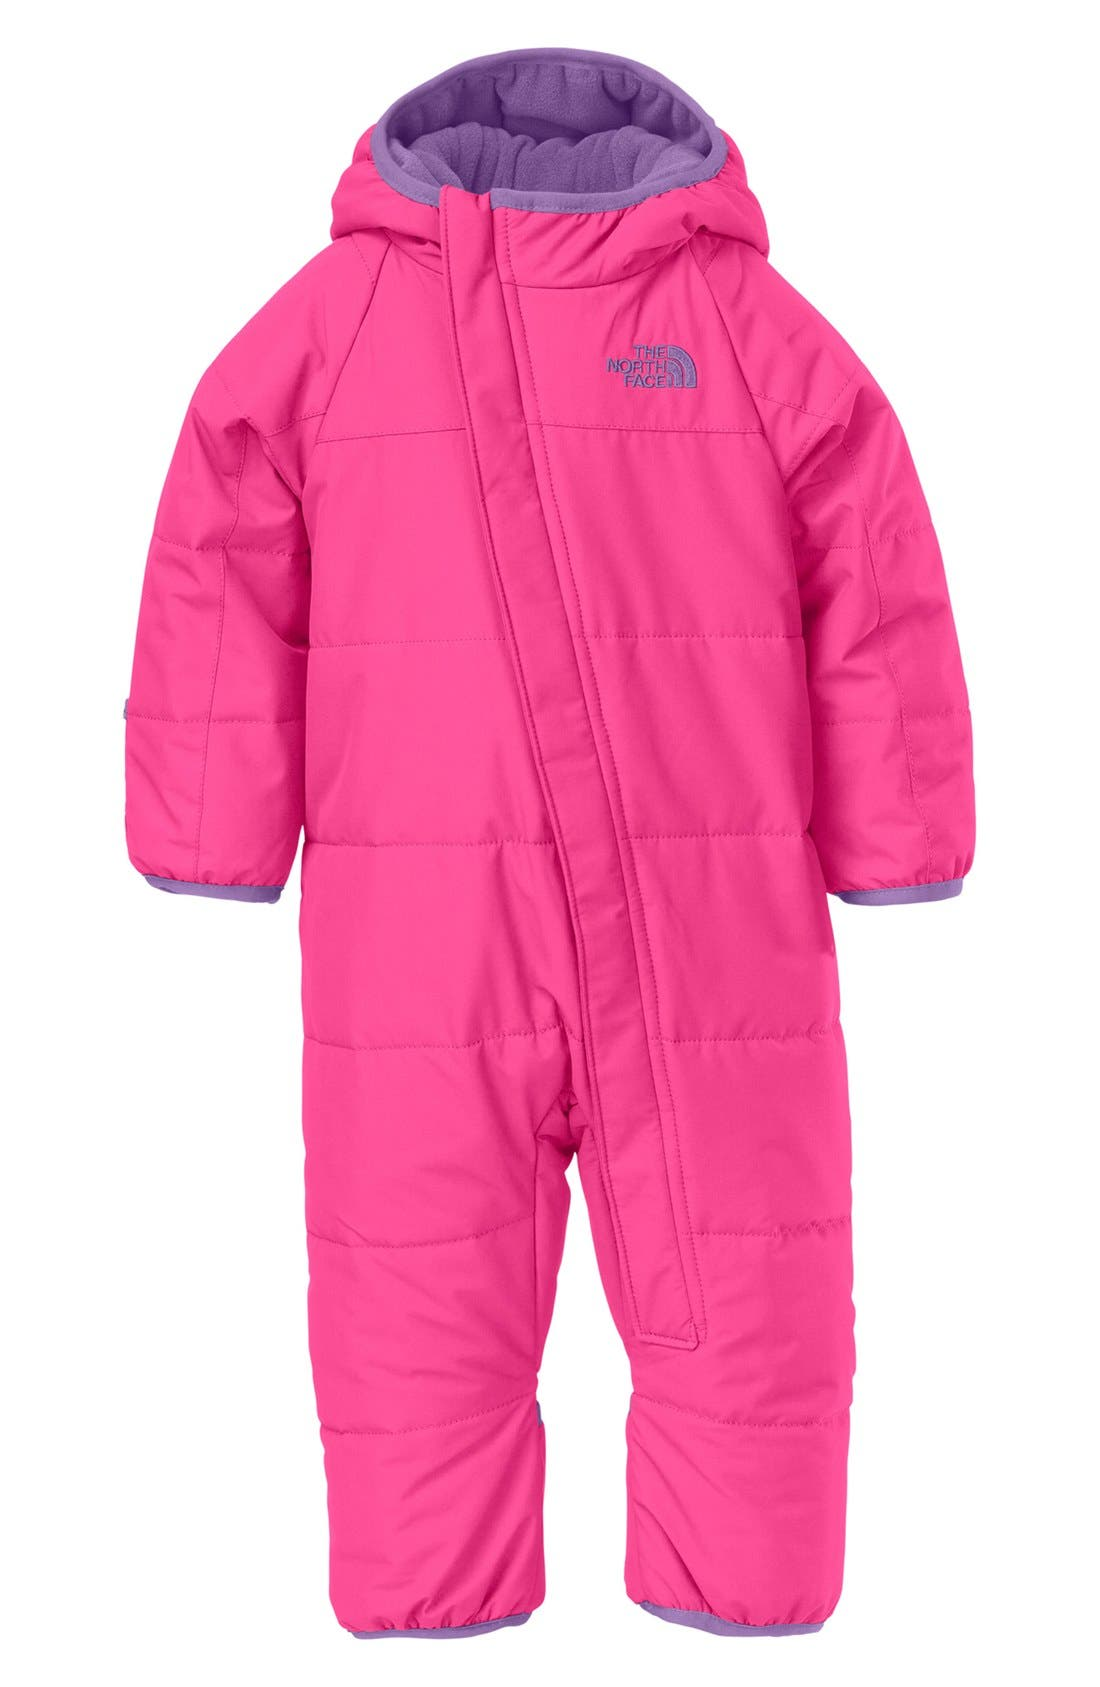 Main Image - The North Face 'Toasty Toes' Bunting (Baby Girls)